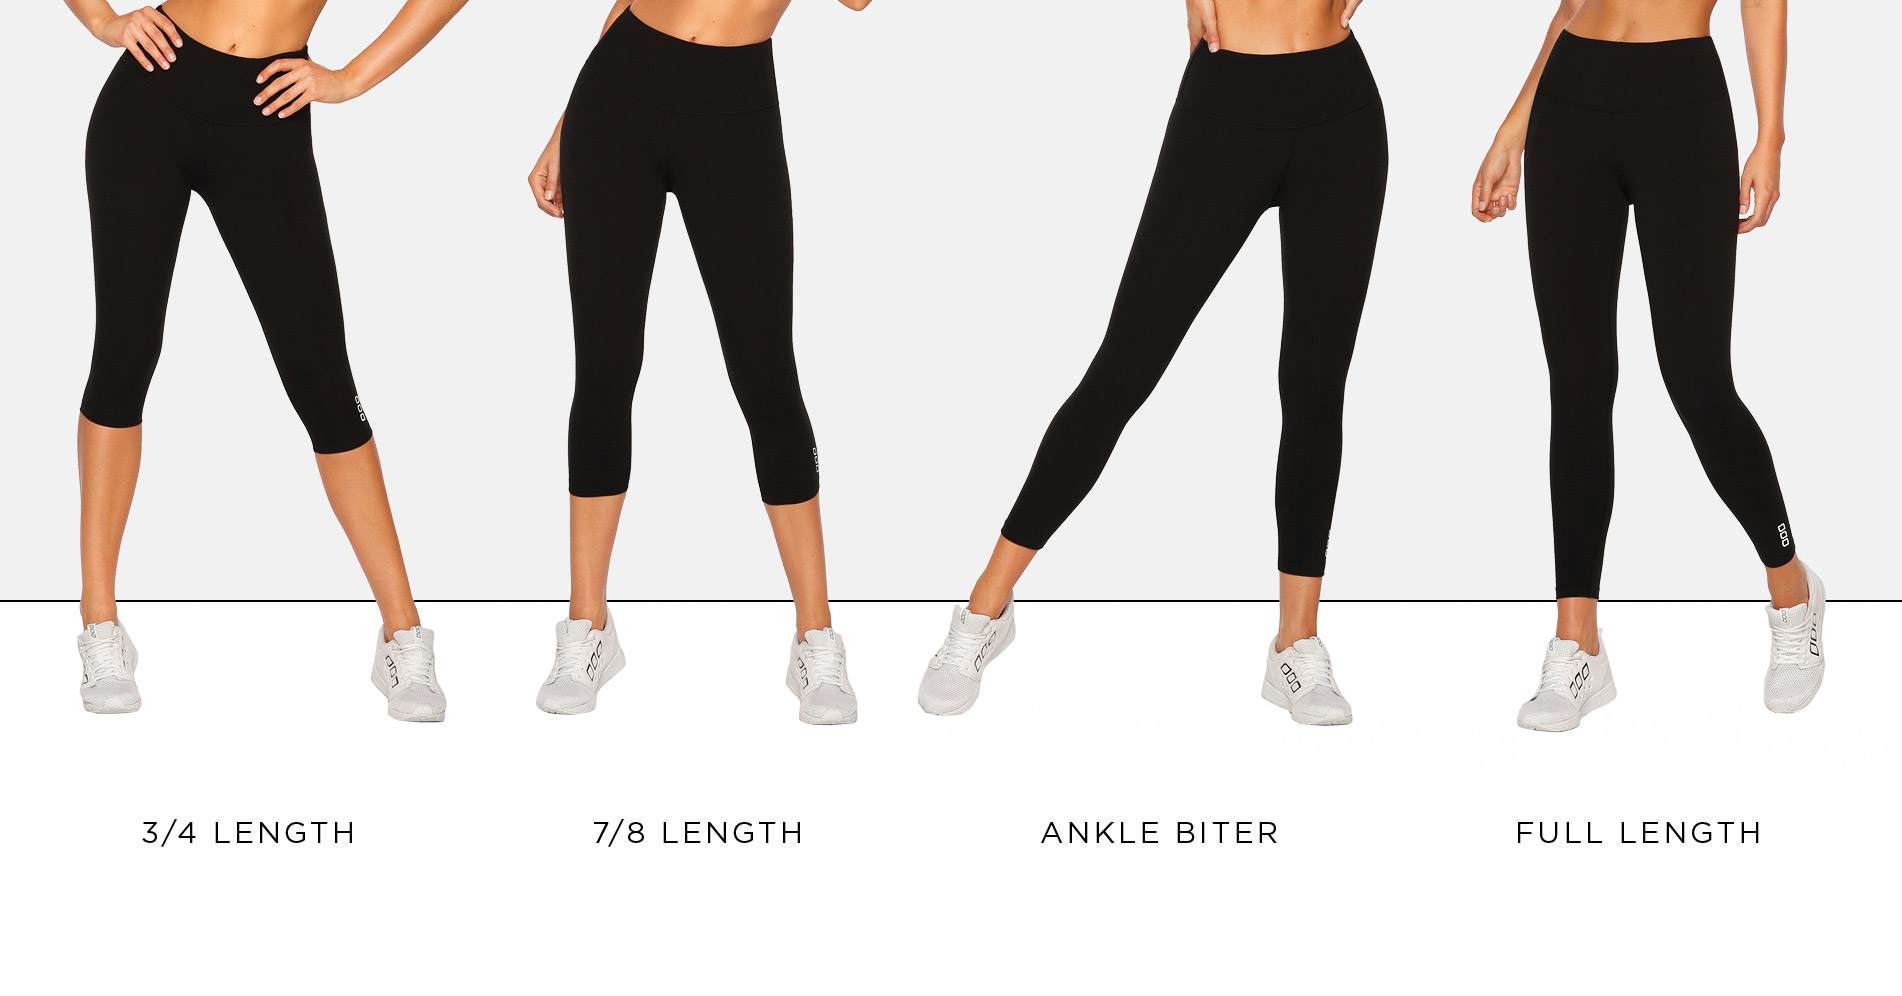 Decorative image of 3/4 length, 7/8 length, ankle biter and full length leggings